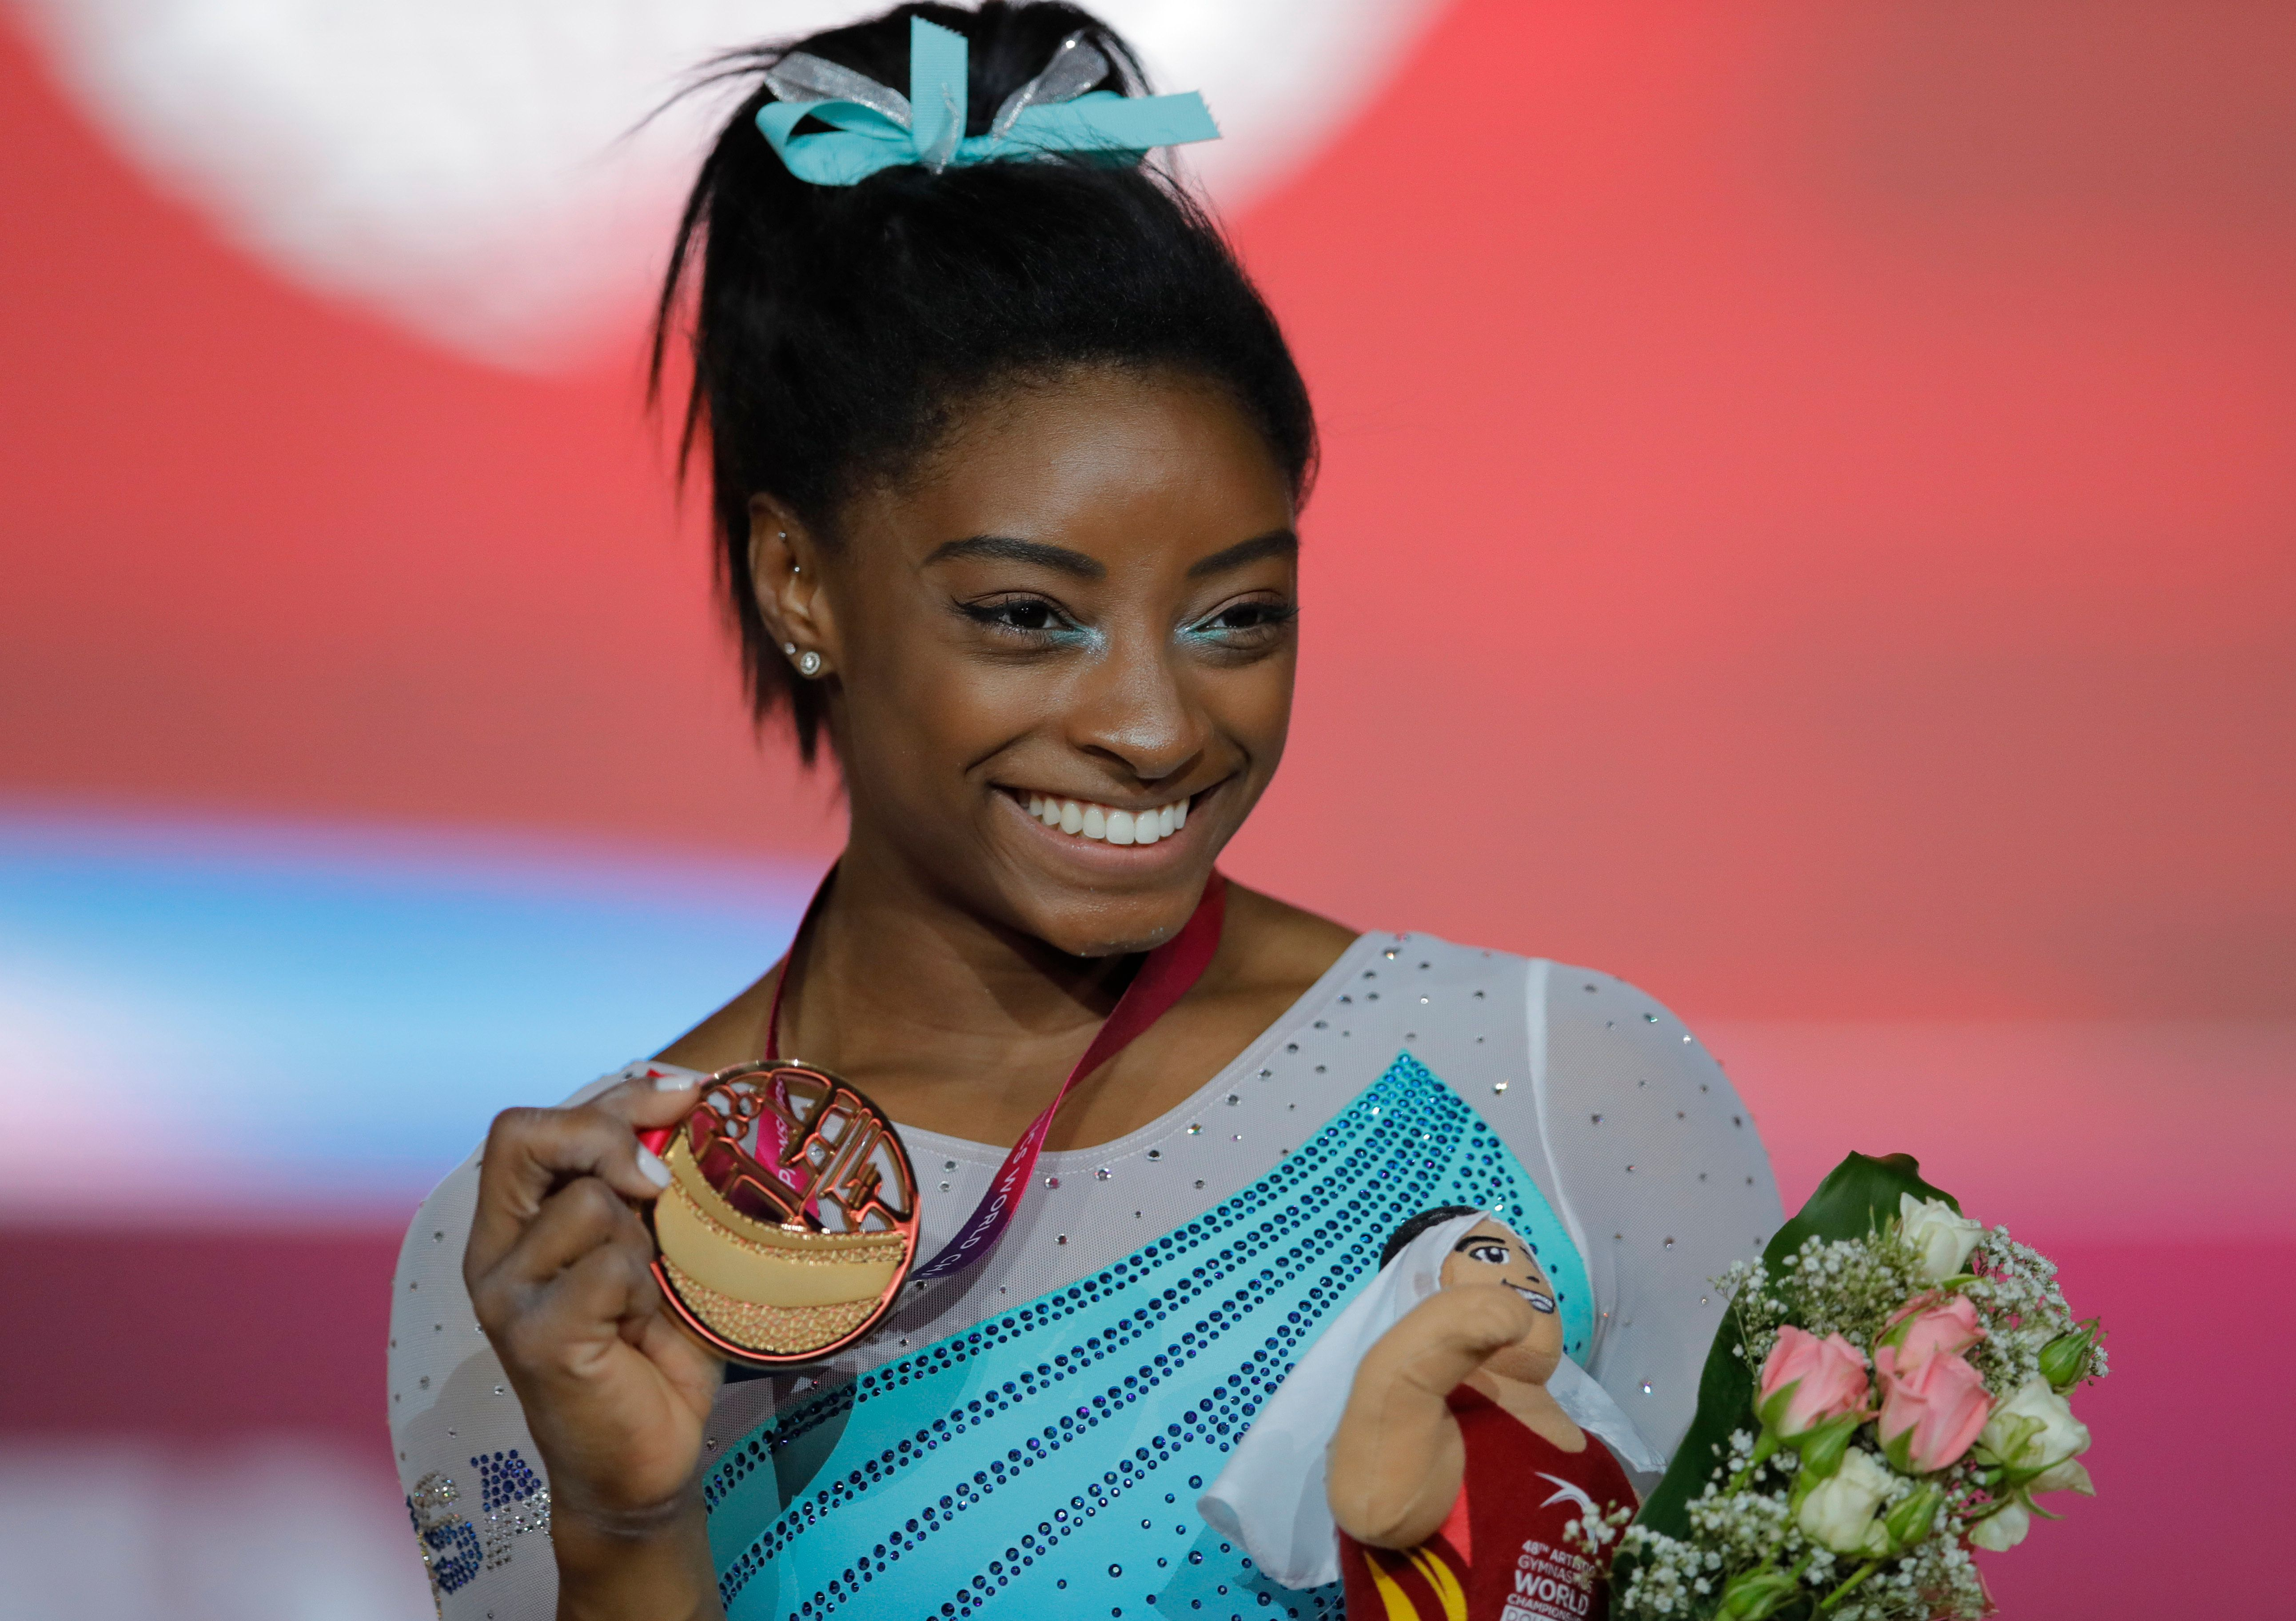 Gold medallist and four-times All-Around world champion Simone Biles of the U.S., poses on the podium after the Women's All-Around Final of the Gymnastics World Chamionships at the Aspire Dome in Doha, Qatar, Thursday, Nov. 1, 2018. (AP Photo/Vadim Ghirda)